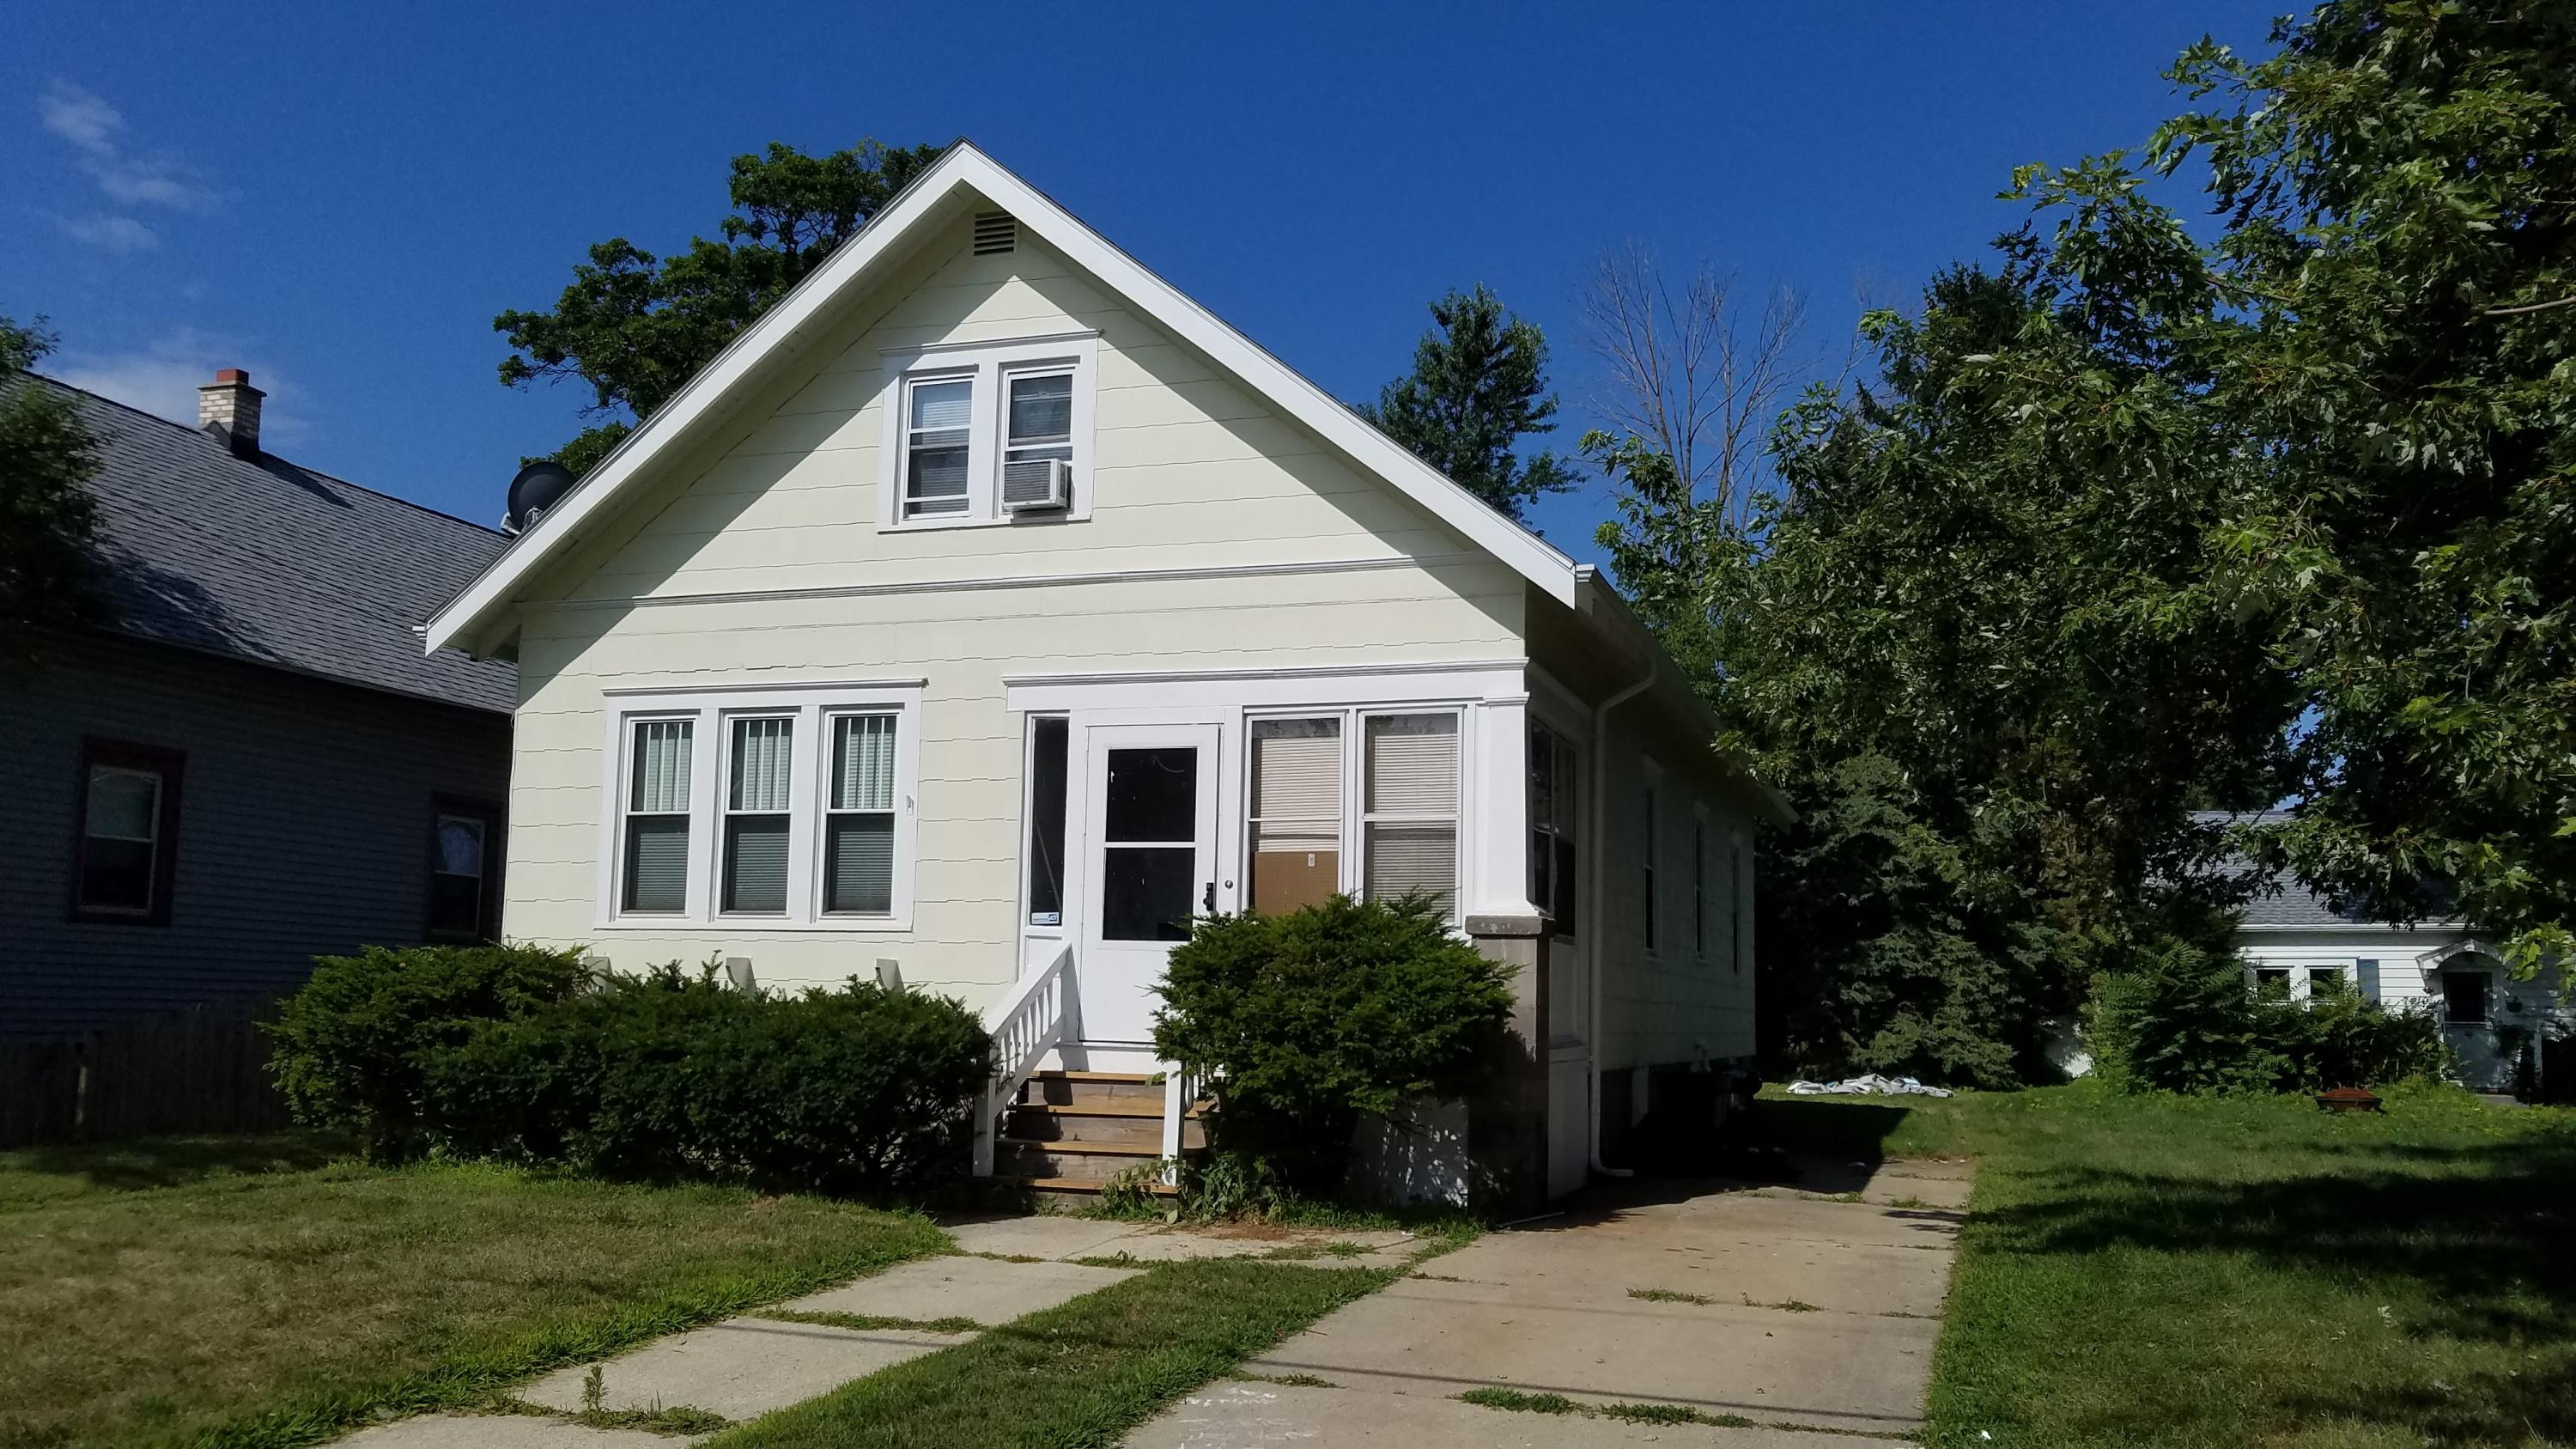 7414 16th AVE, Kenosha, Wisconsin 53143, 4 Bedrooms Bedrooms, 7 Rooms Rooms,1 BathroomBathrooms,Single-Family,For Sale,16th AVE,1622502